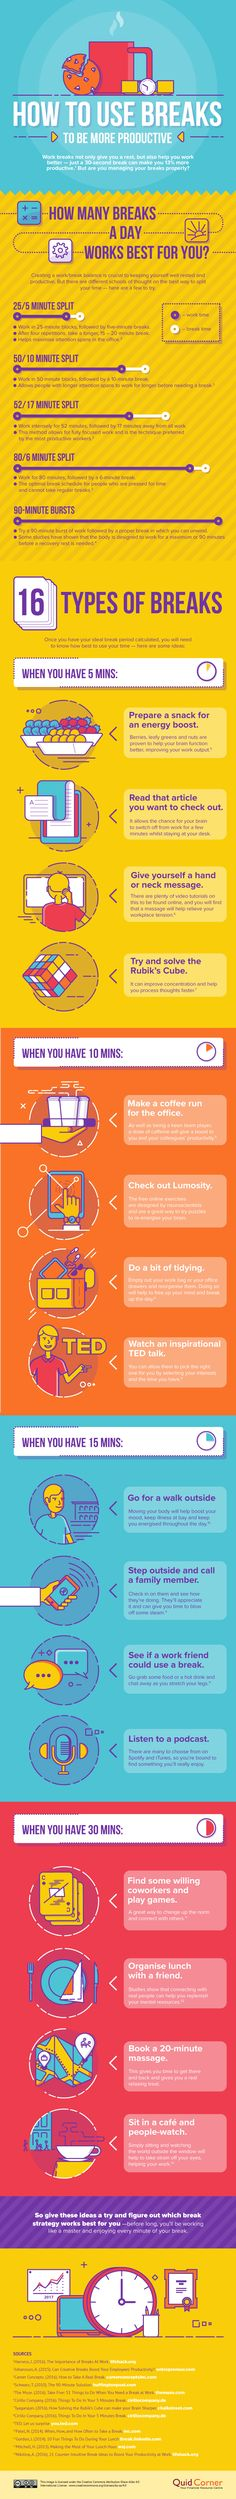 How to Use Breaks to Be More Productive Infographic - http://elearninginfographics.com/how-to-use-breaks-to-be-more-productive-infographic/ #businesscollege